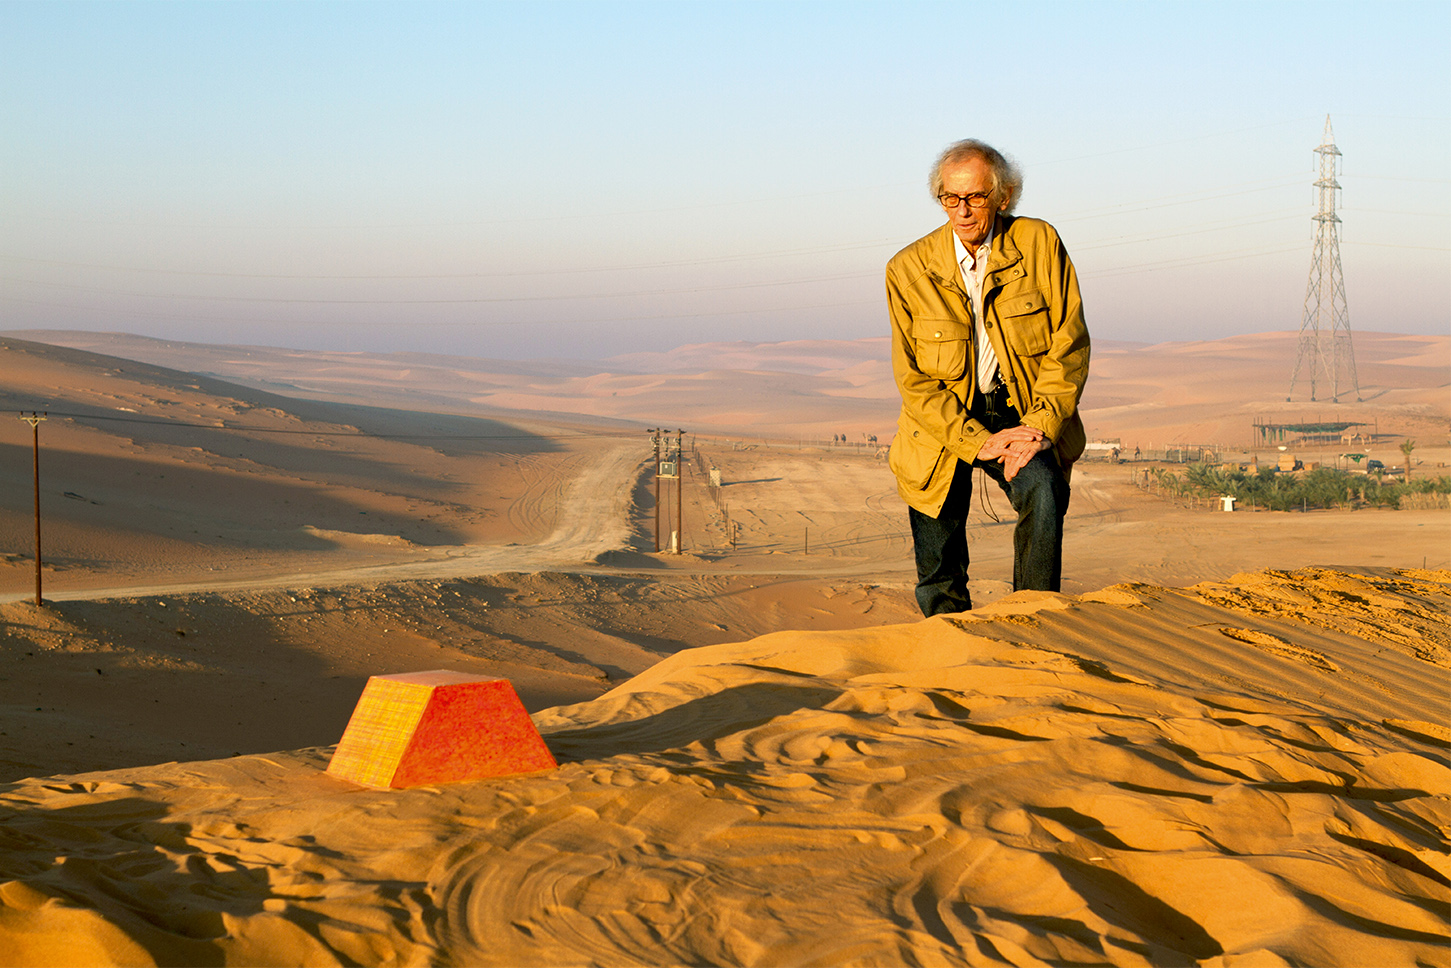 Christo during a scale model test at the proposed site of The Mastaba, November 2011, Photo: Wolfgang Volz, © 2011 Christo